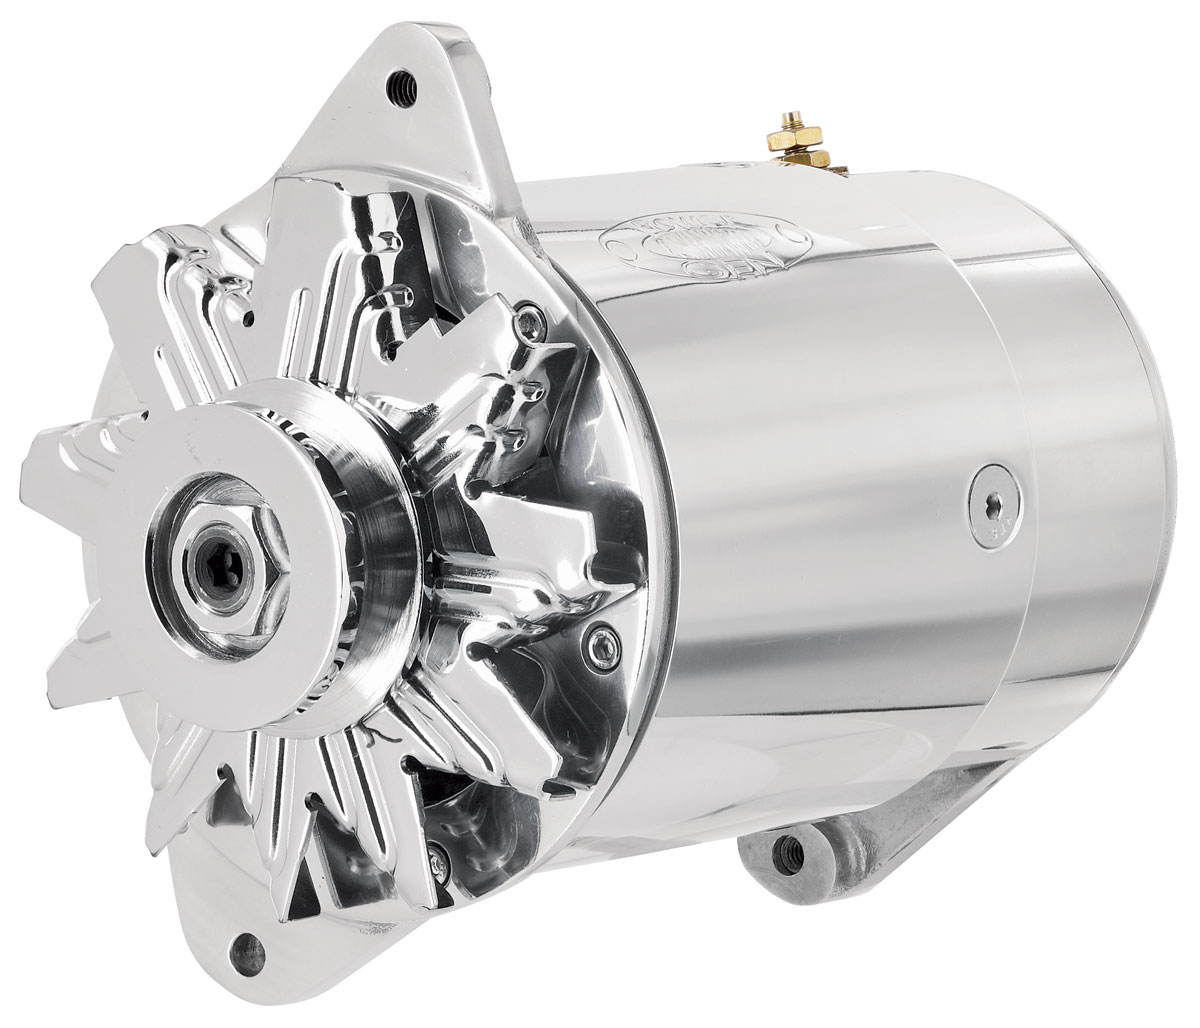 Alternator, PowerGen, 1954-62 GM Car, Polished, Short Housing, Standard